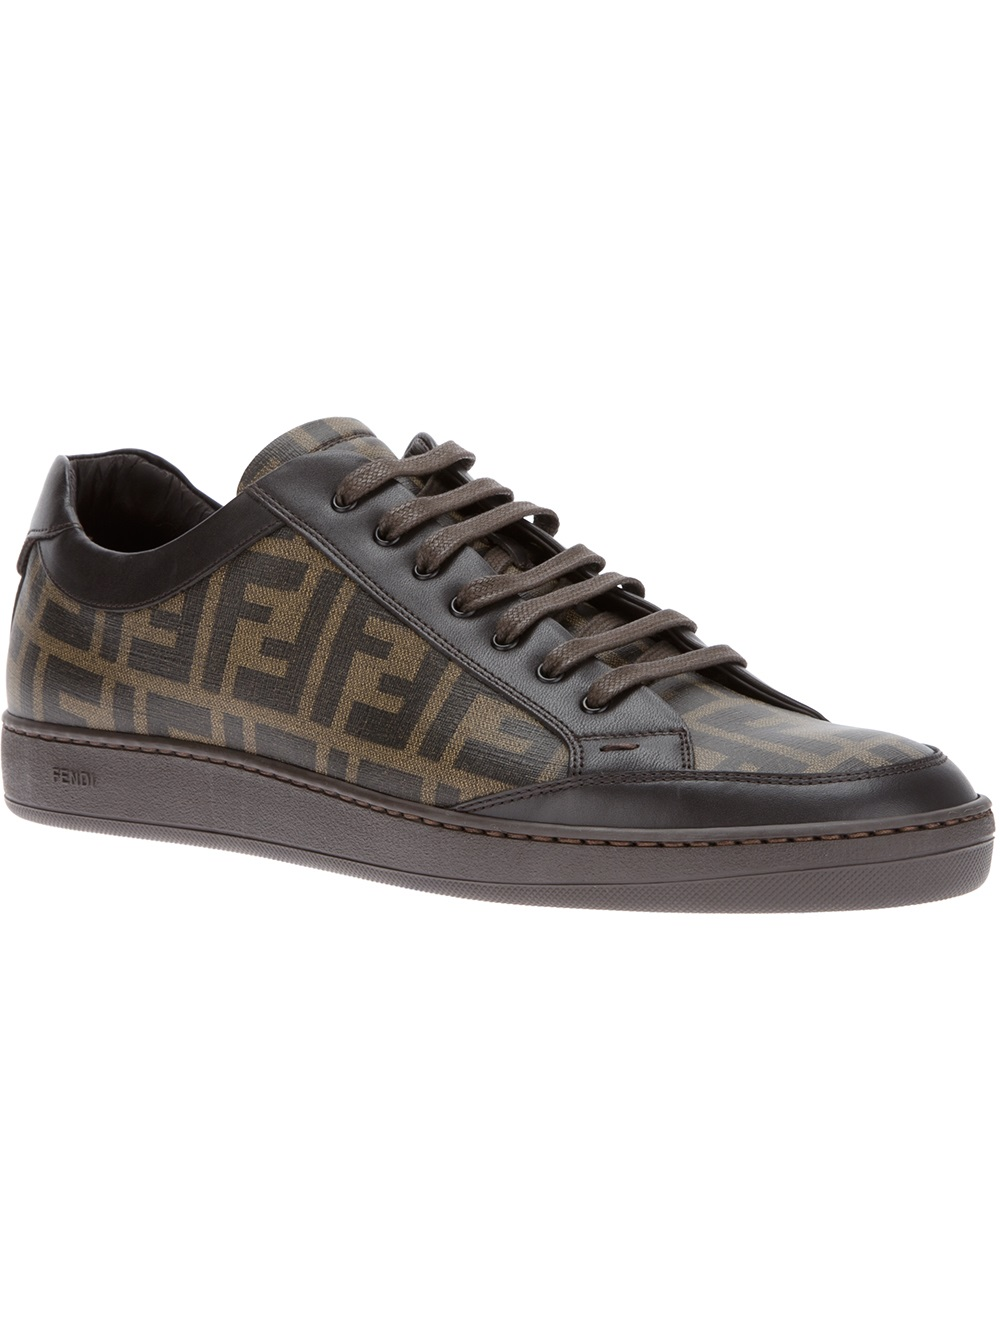 Fendi Printed Logo Trainer in Black for Men | Lyst